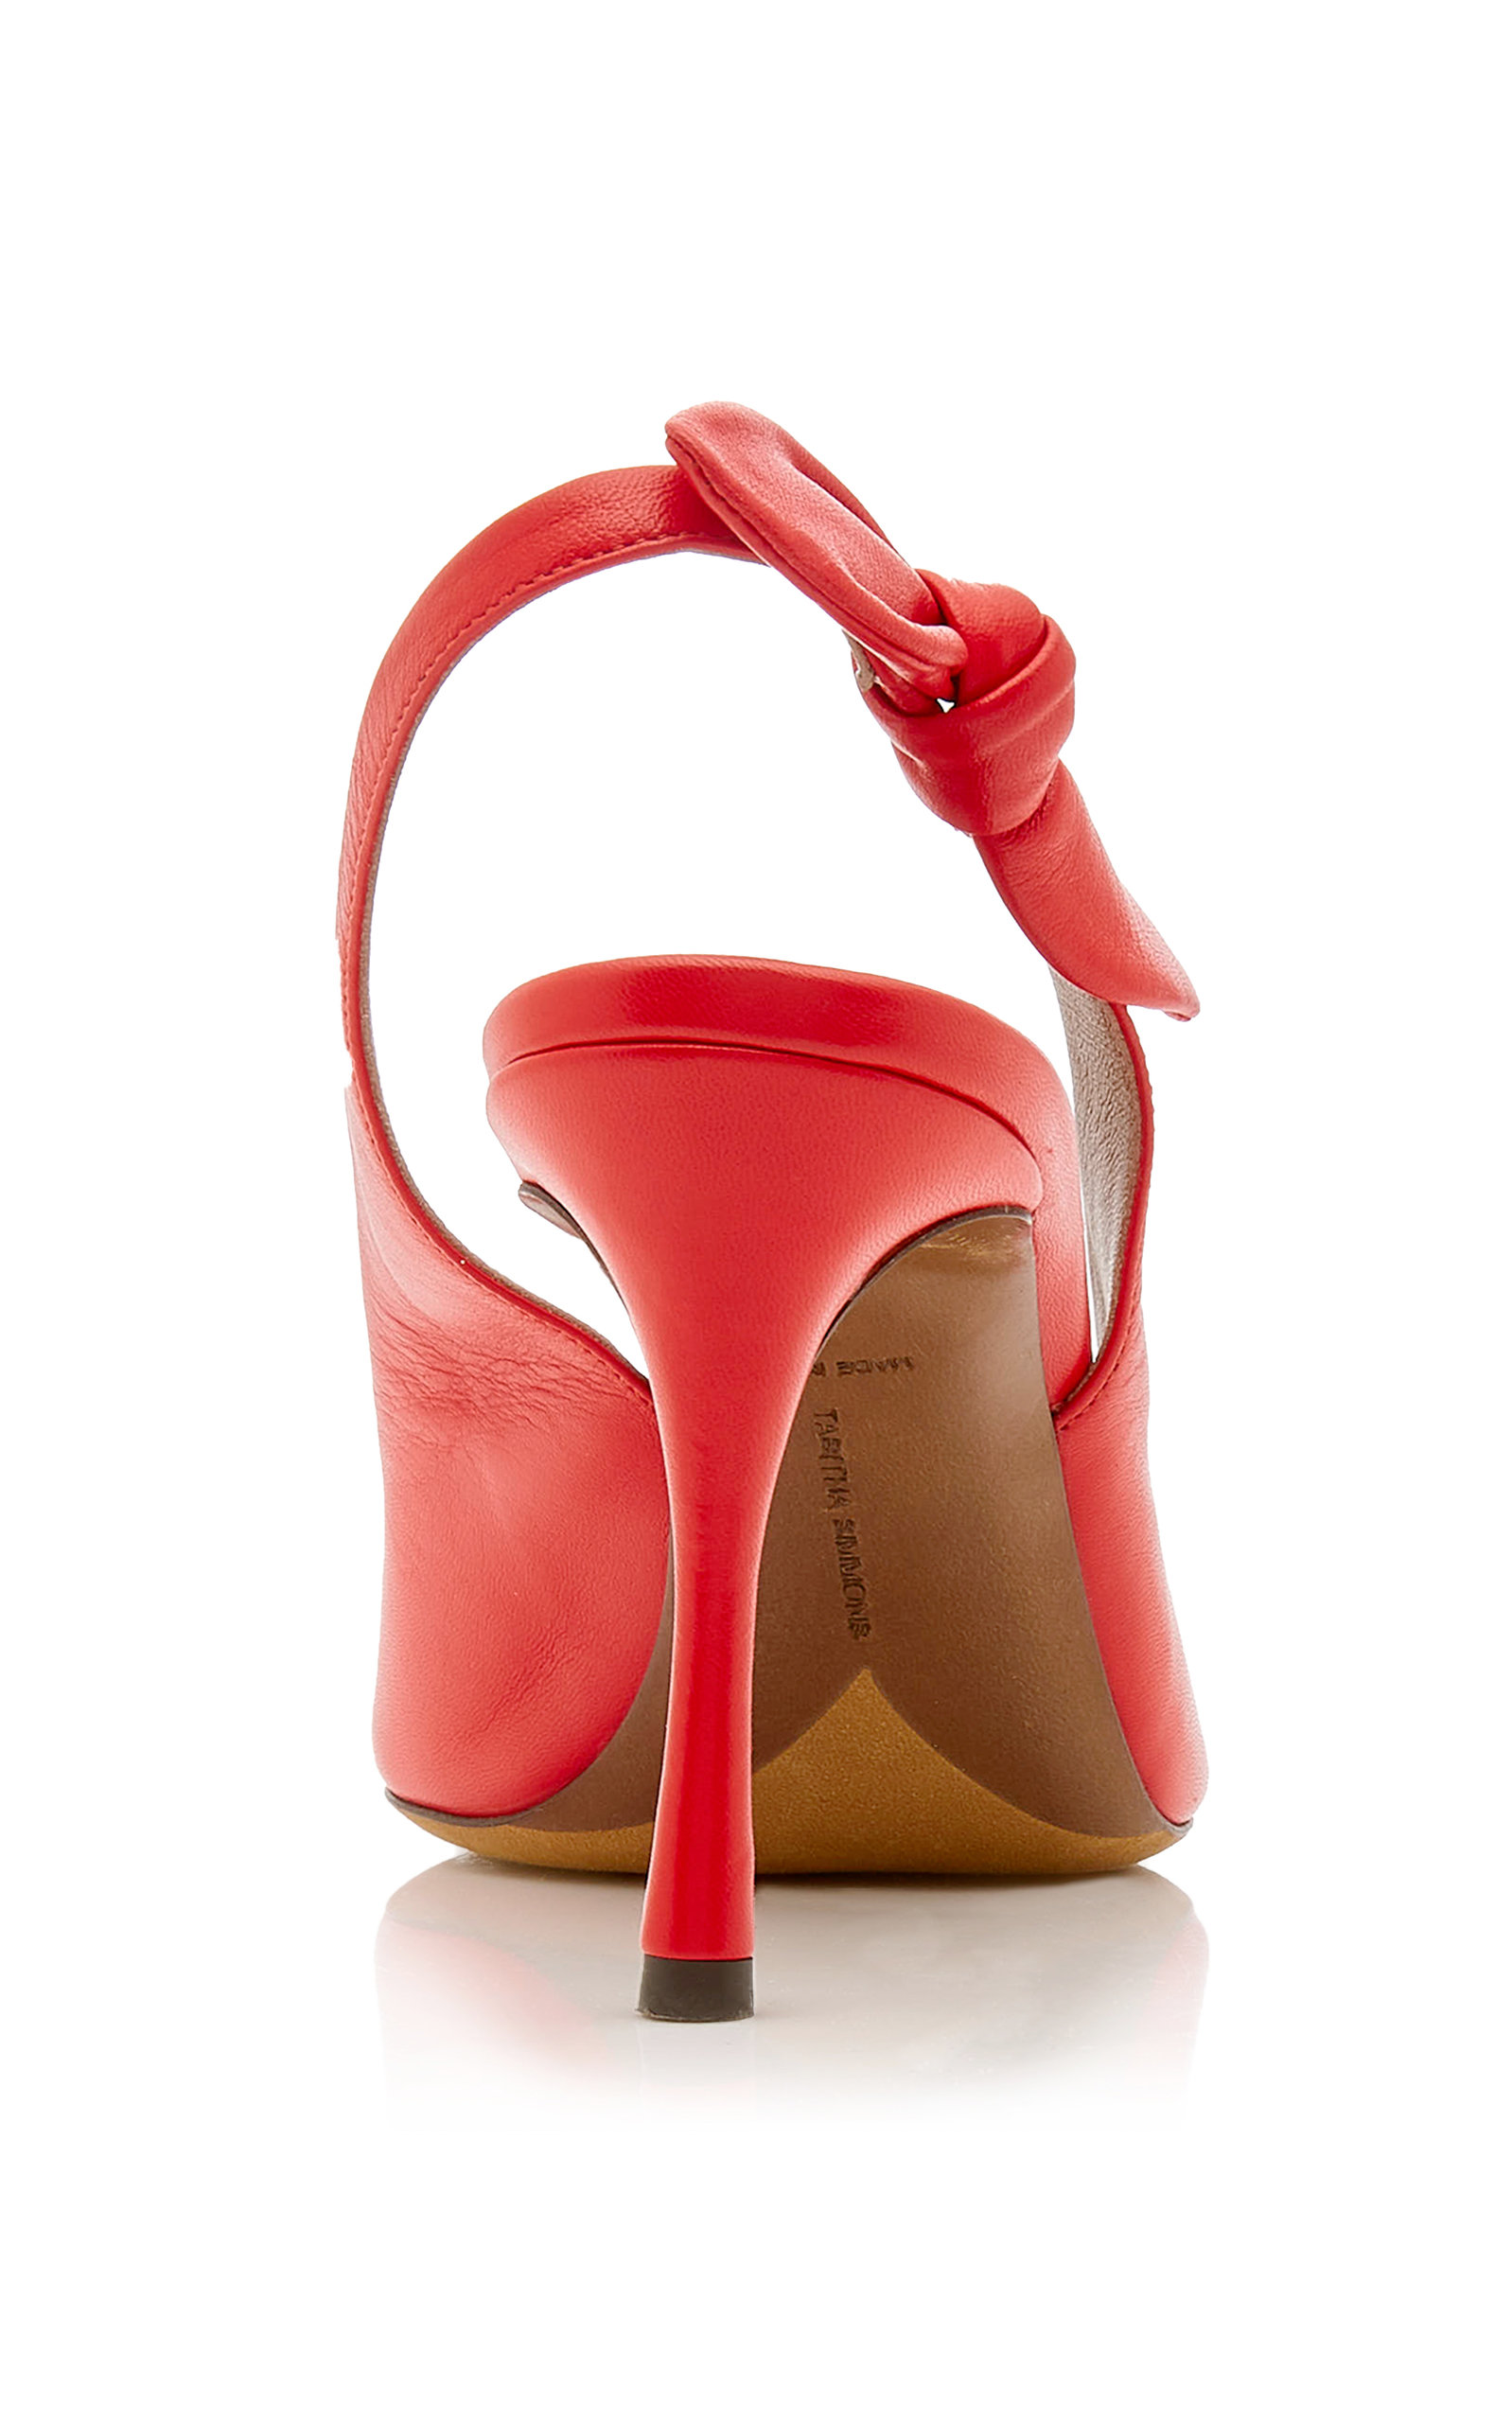 Millie Bow-Embellished Leather Pumps Tabitha Simmons r1IPk8Xd